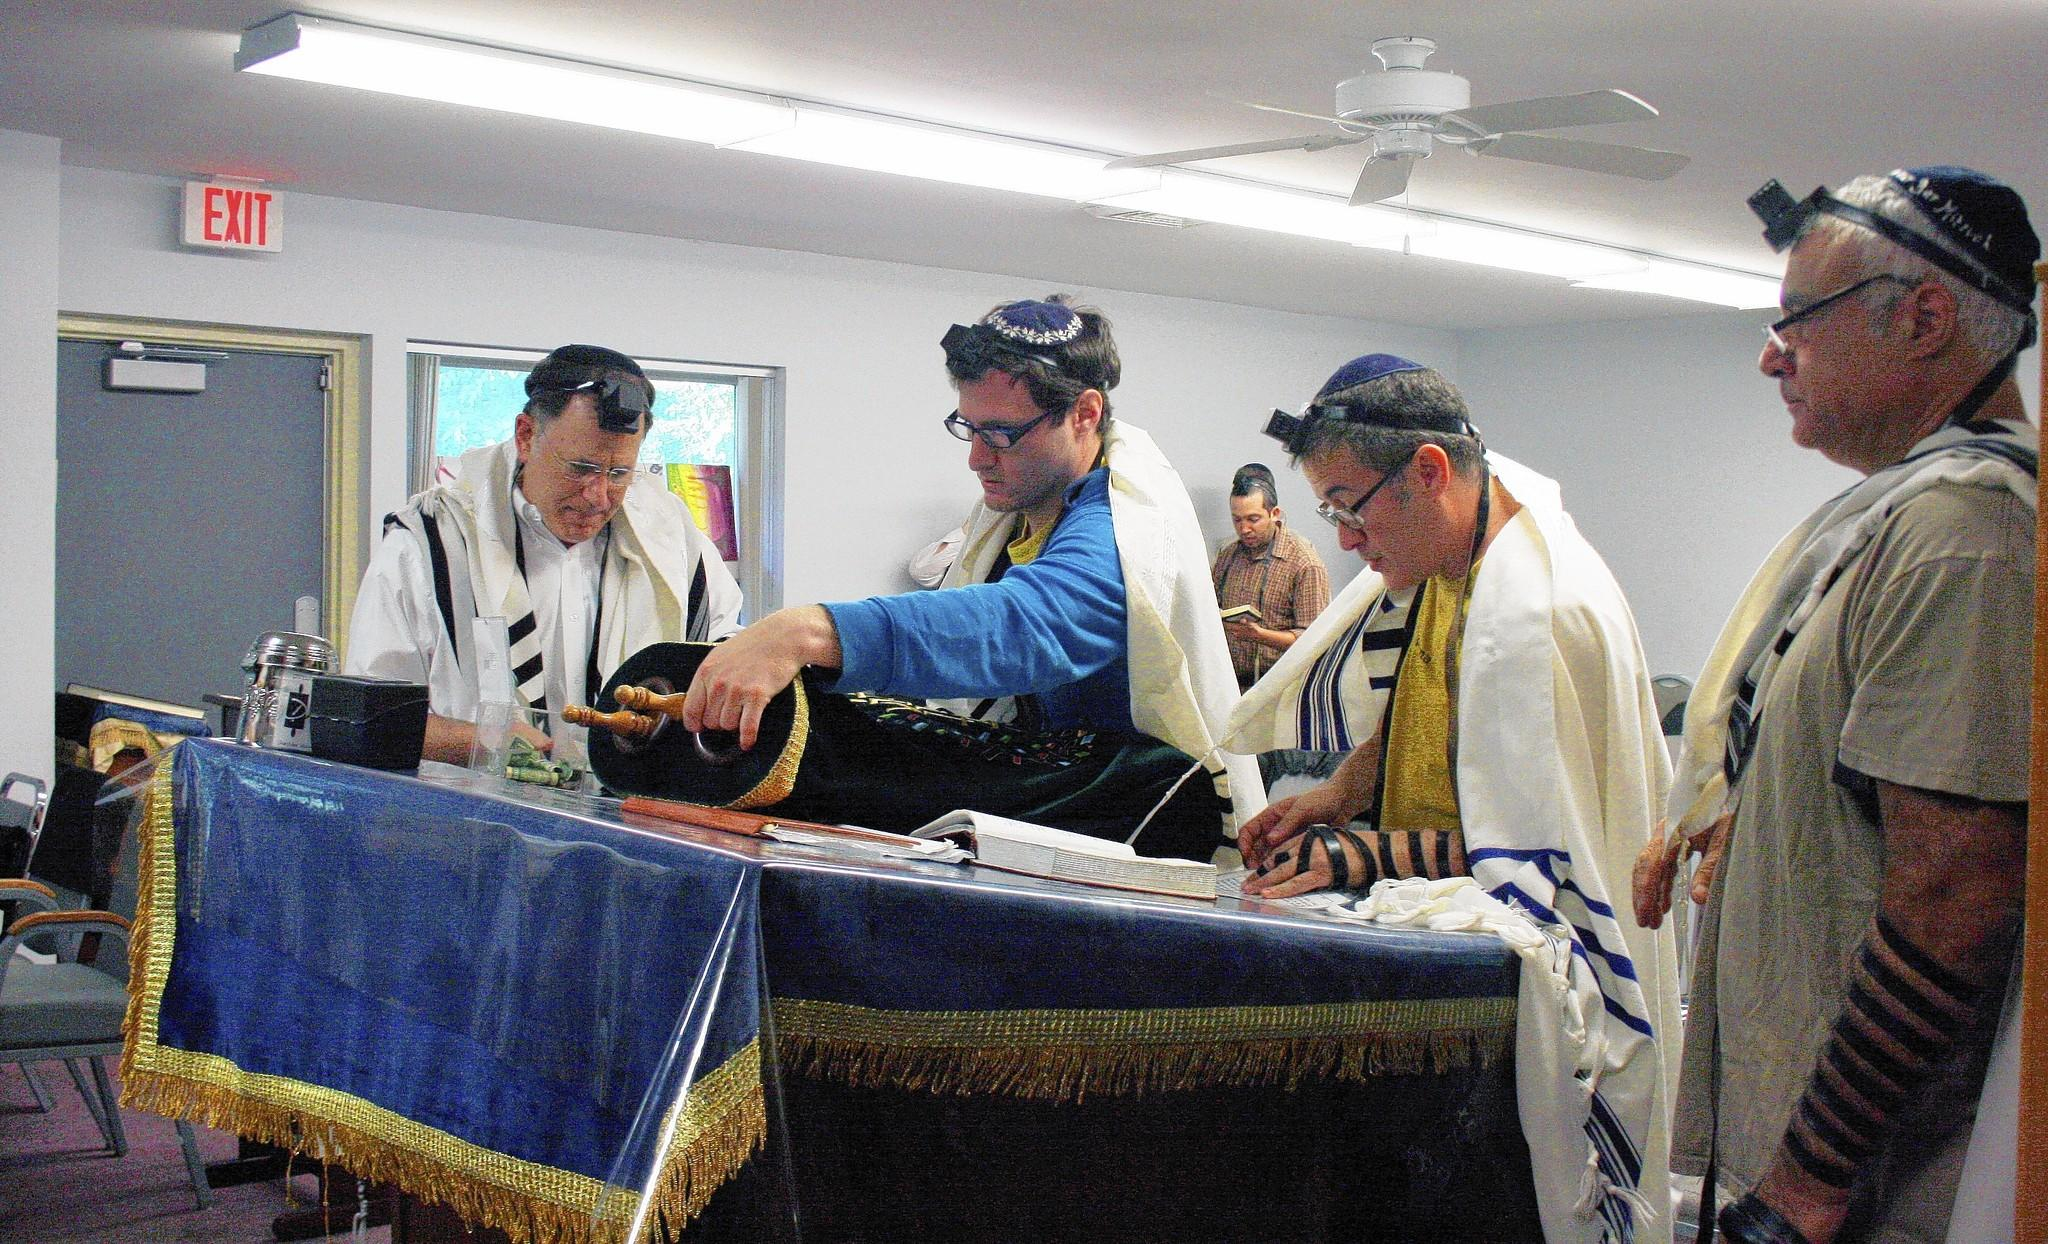 Darchei Noam of Glenbrook member Shaya Avner, center, uncovers one of the congregation's two Torah scrolls during a morning service on Aug. 1. The congregation is going to start construciton on its new synagogue soon.